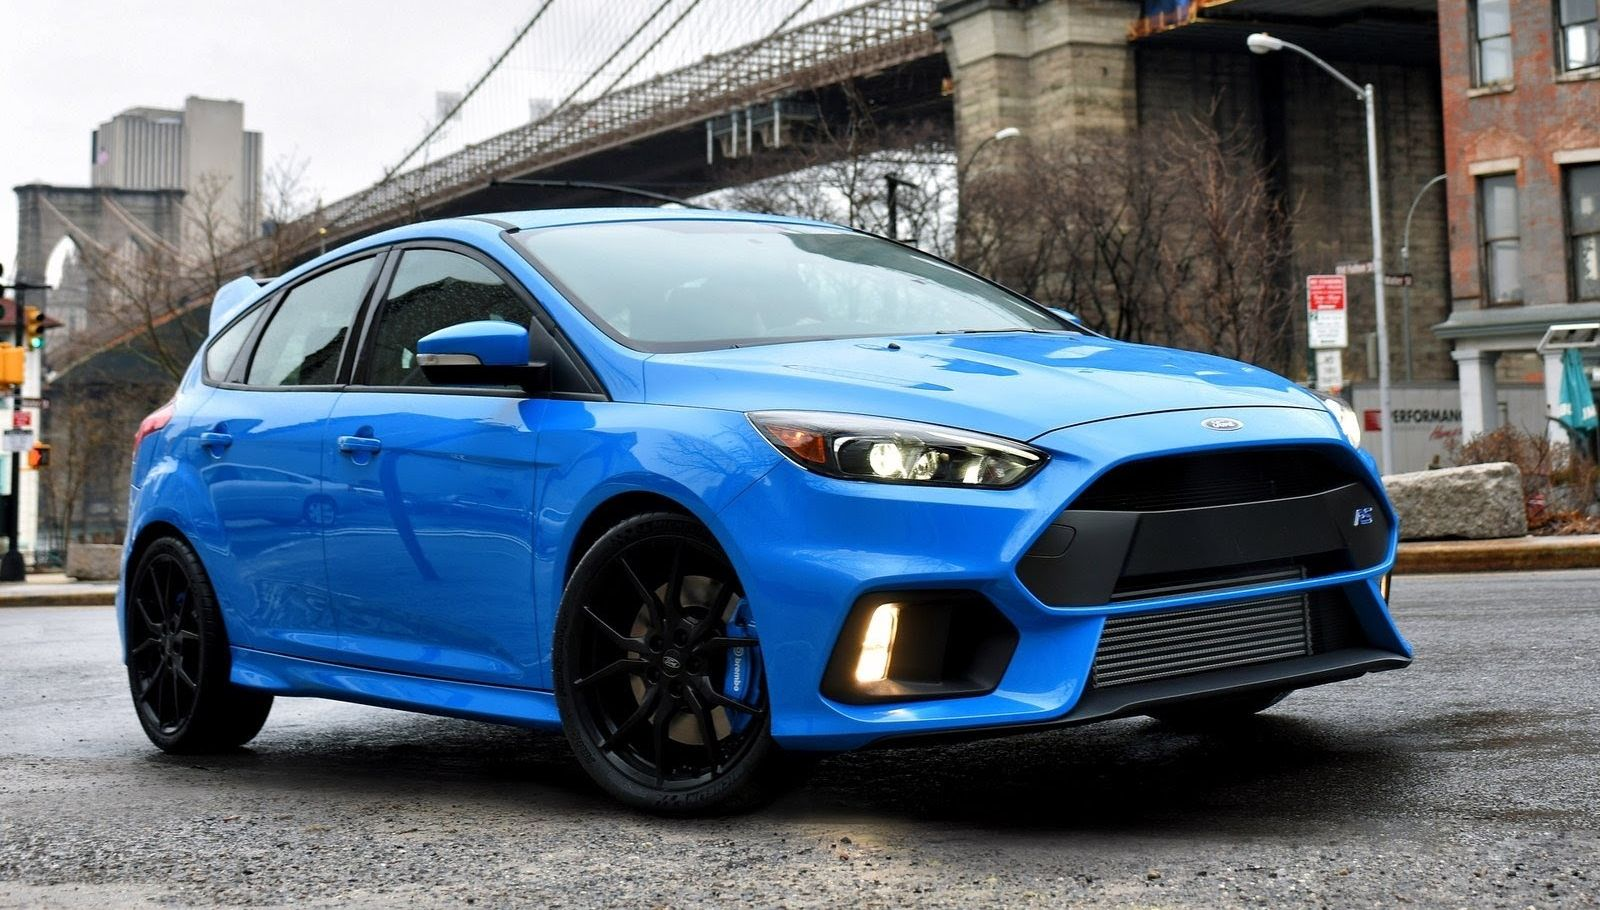 Ford's ultimate-performance Focus, the RS model, has eluded buyers here in the US for fifteen years. But for 2016, the rally-bred super hatch is no longer only for Europe. Even better news: This built-in-Germany monster with 315 hp and 325 lb-ft of torque will come only with a manual. That should keep this machine in the hands of those that appreciate its capabilities.